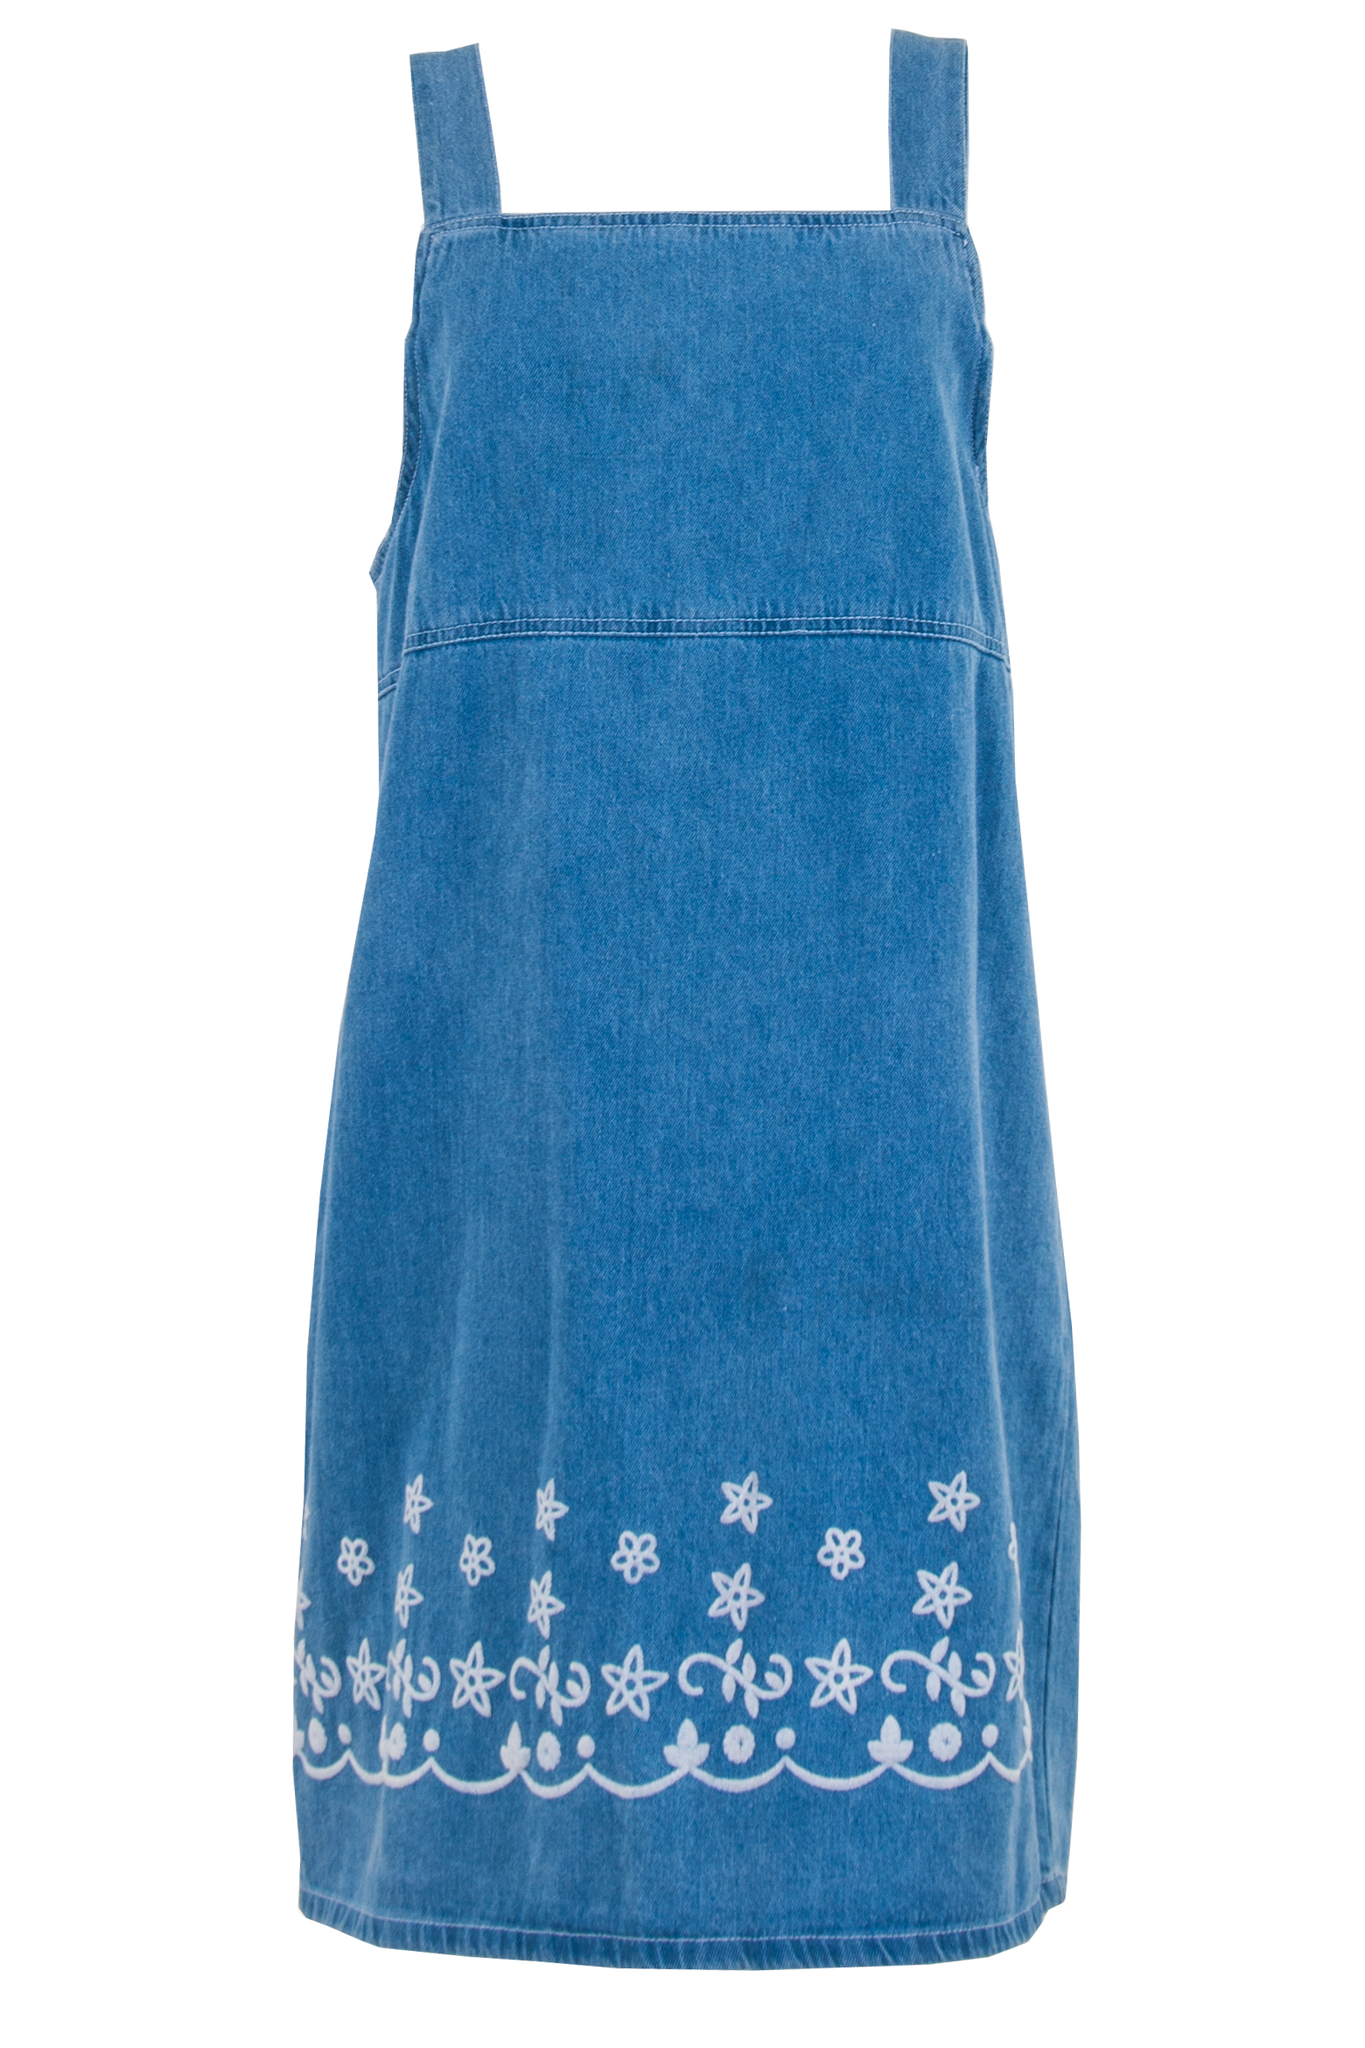 blue denim overall dress with embroidered hem